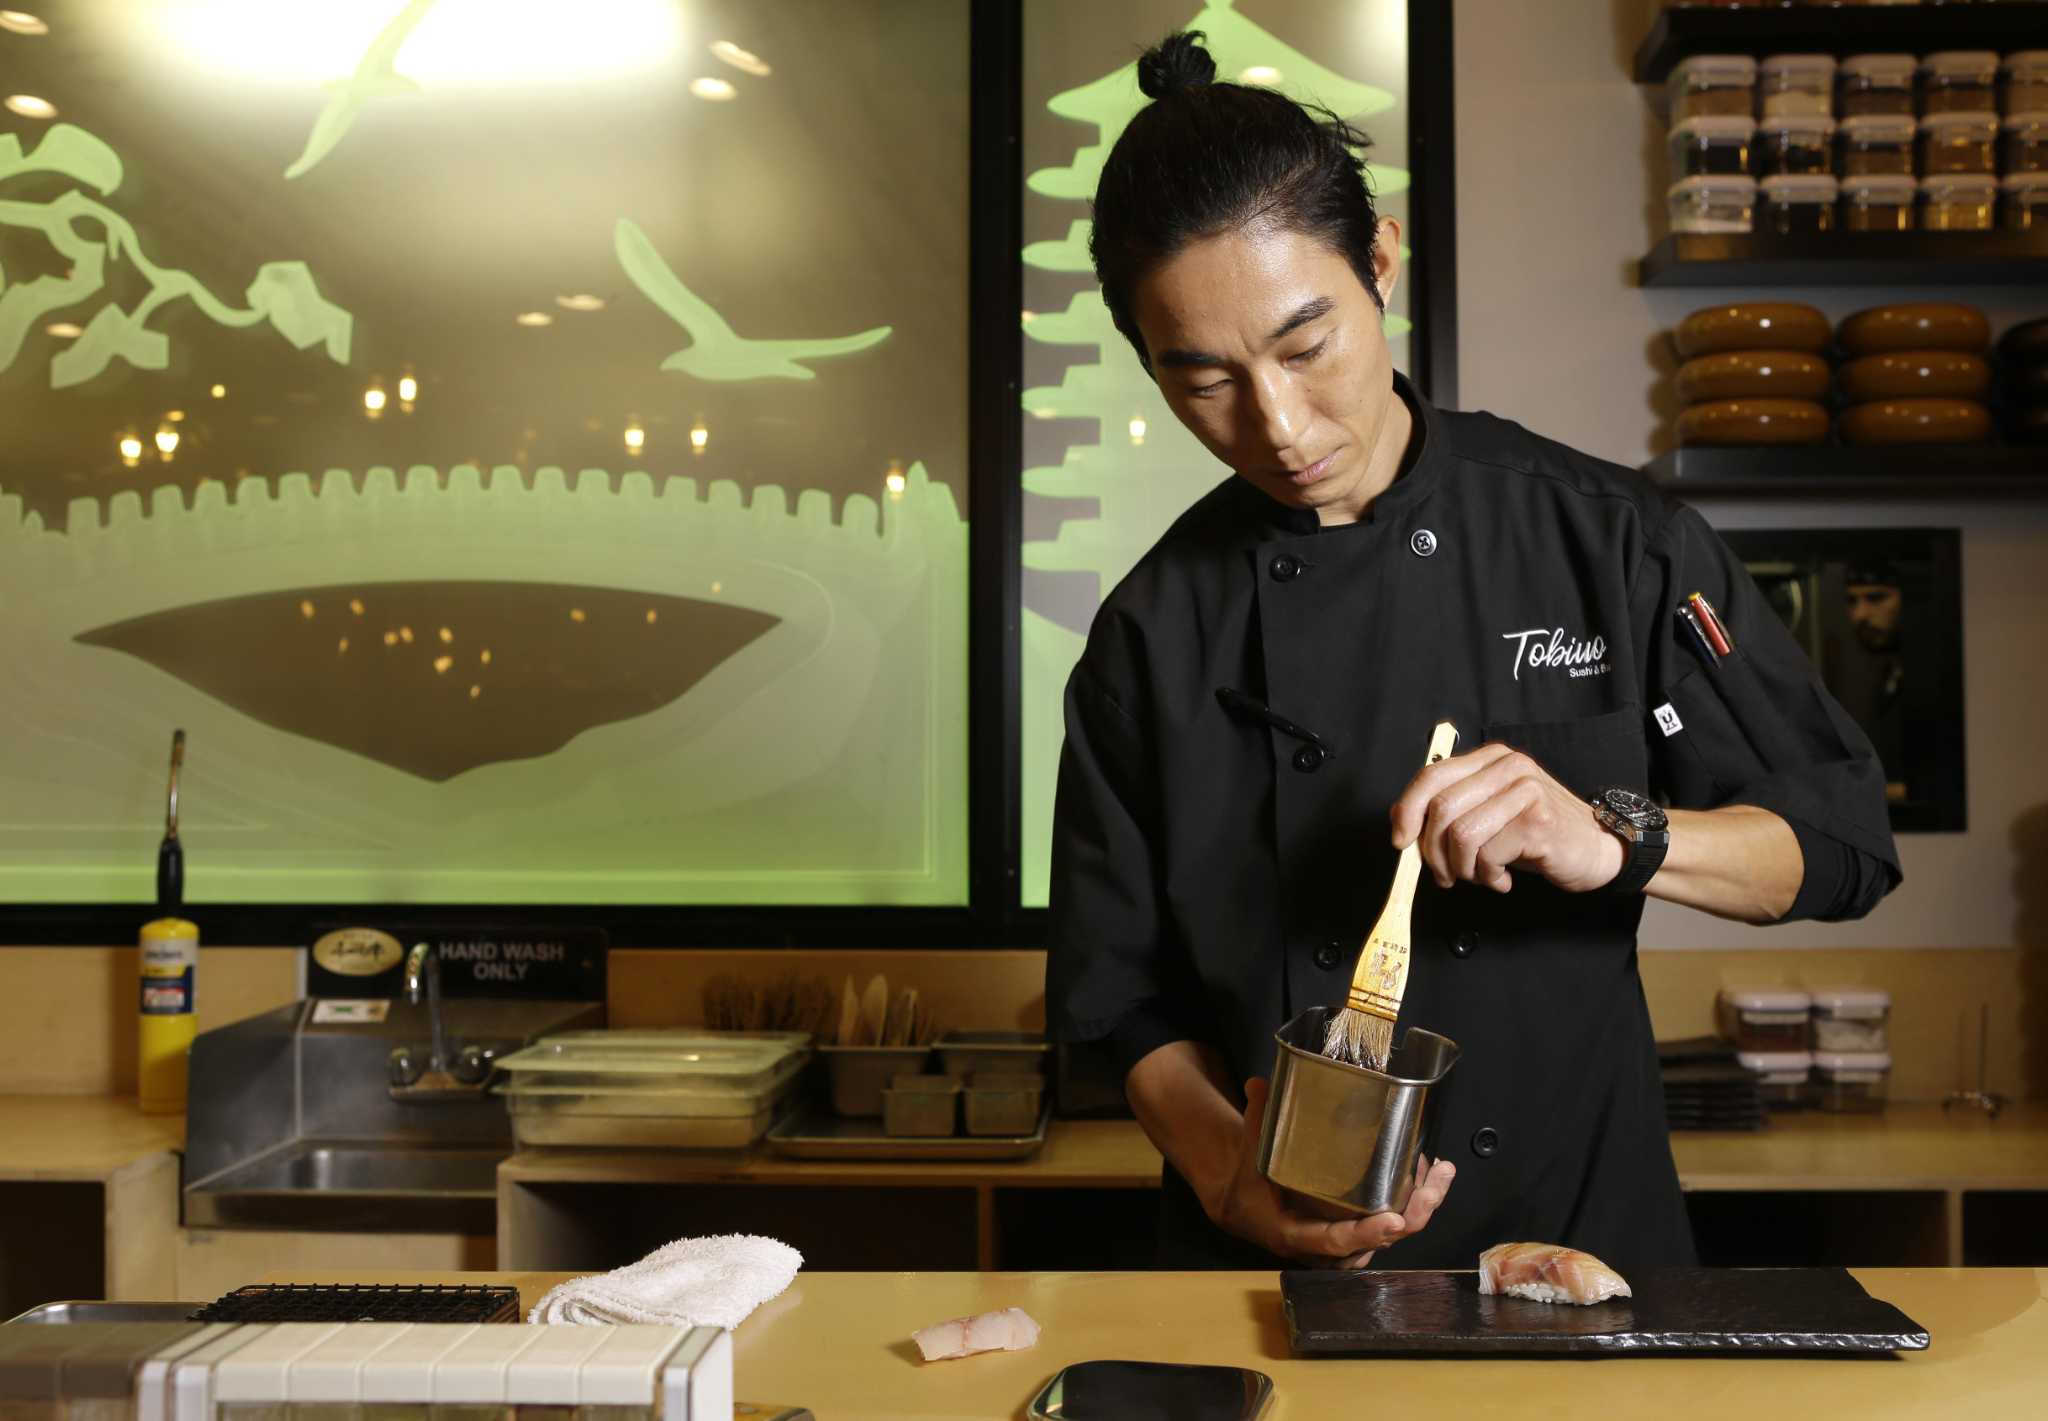 Celebrated sushi chef opening his first restaurant in Midtown in 2020